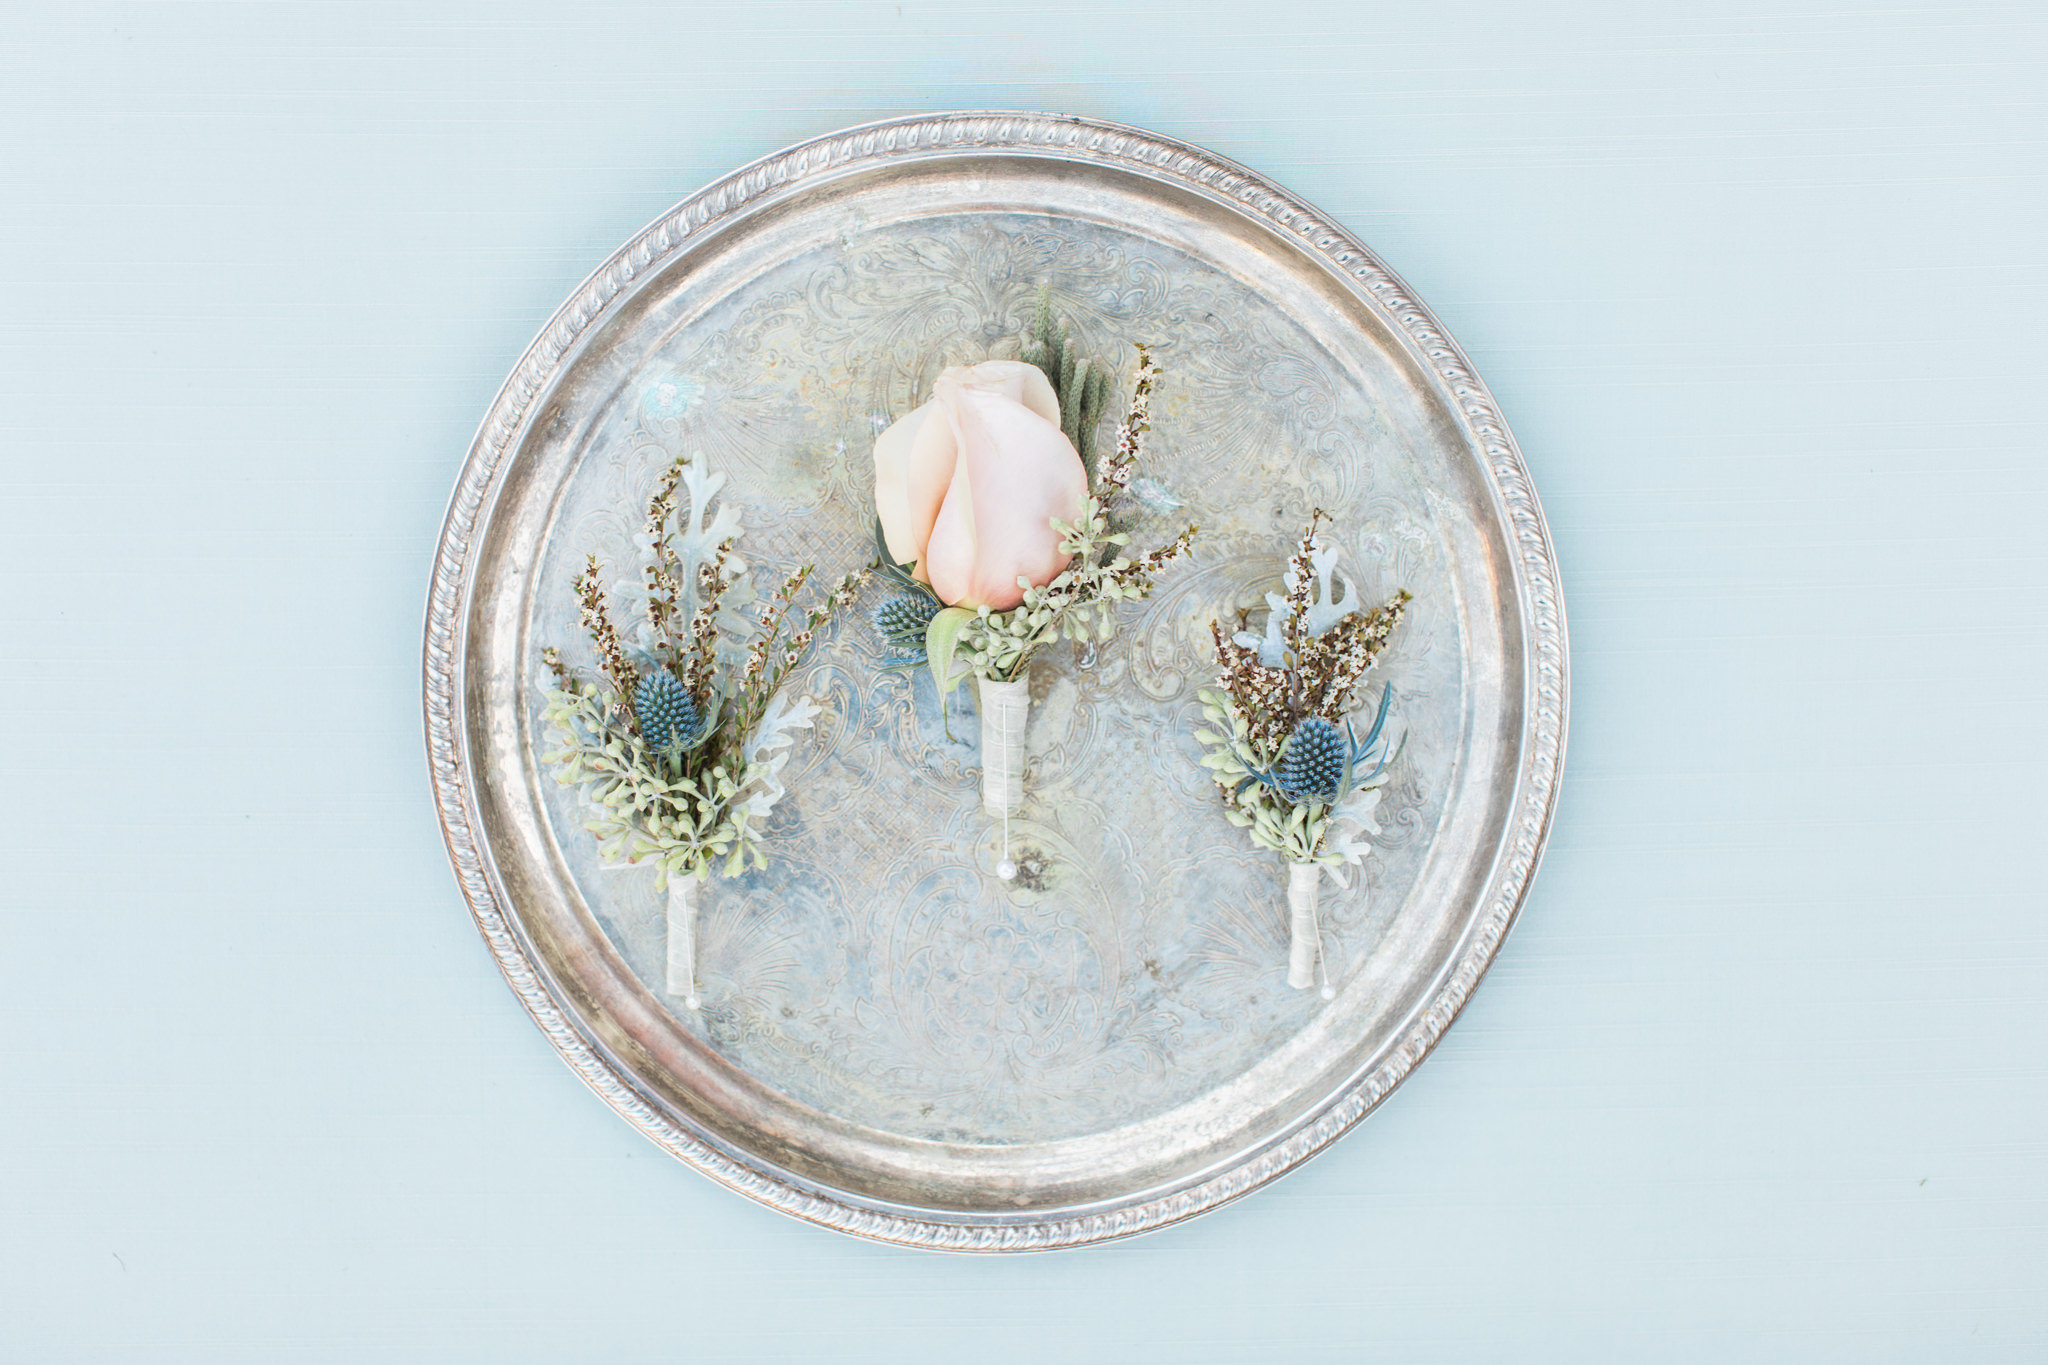 blush rose and greenery boutonnieres on a silver platter and styling board